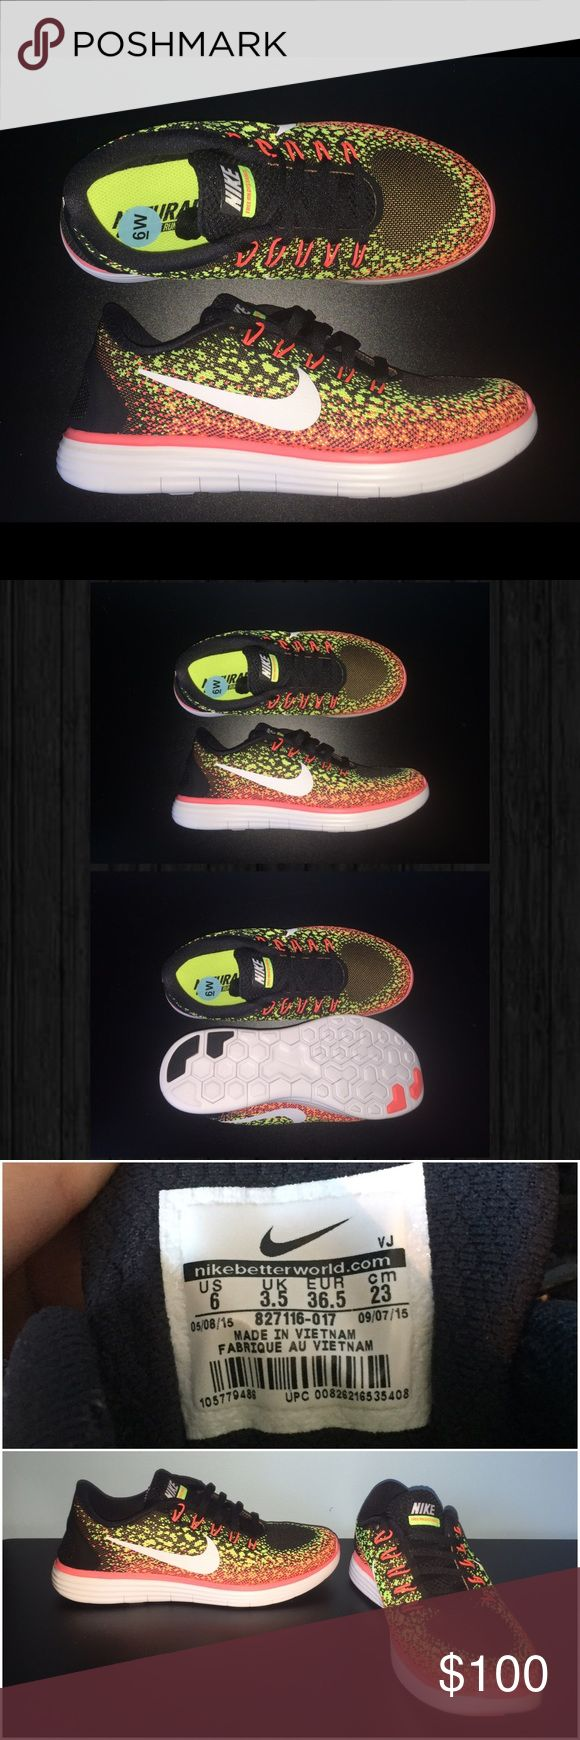 New || Nike Free RN Distance Women's Shoes || 6 Brand New  Nike Free RN Distance Women's Shoes Black/Volt/Lava Size 6   The Nike Free RN Distance is a hyper flexible daily running shoe designed for natural movement and a neutral foot motion Nike Shoes Sneakers